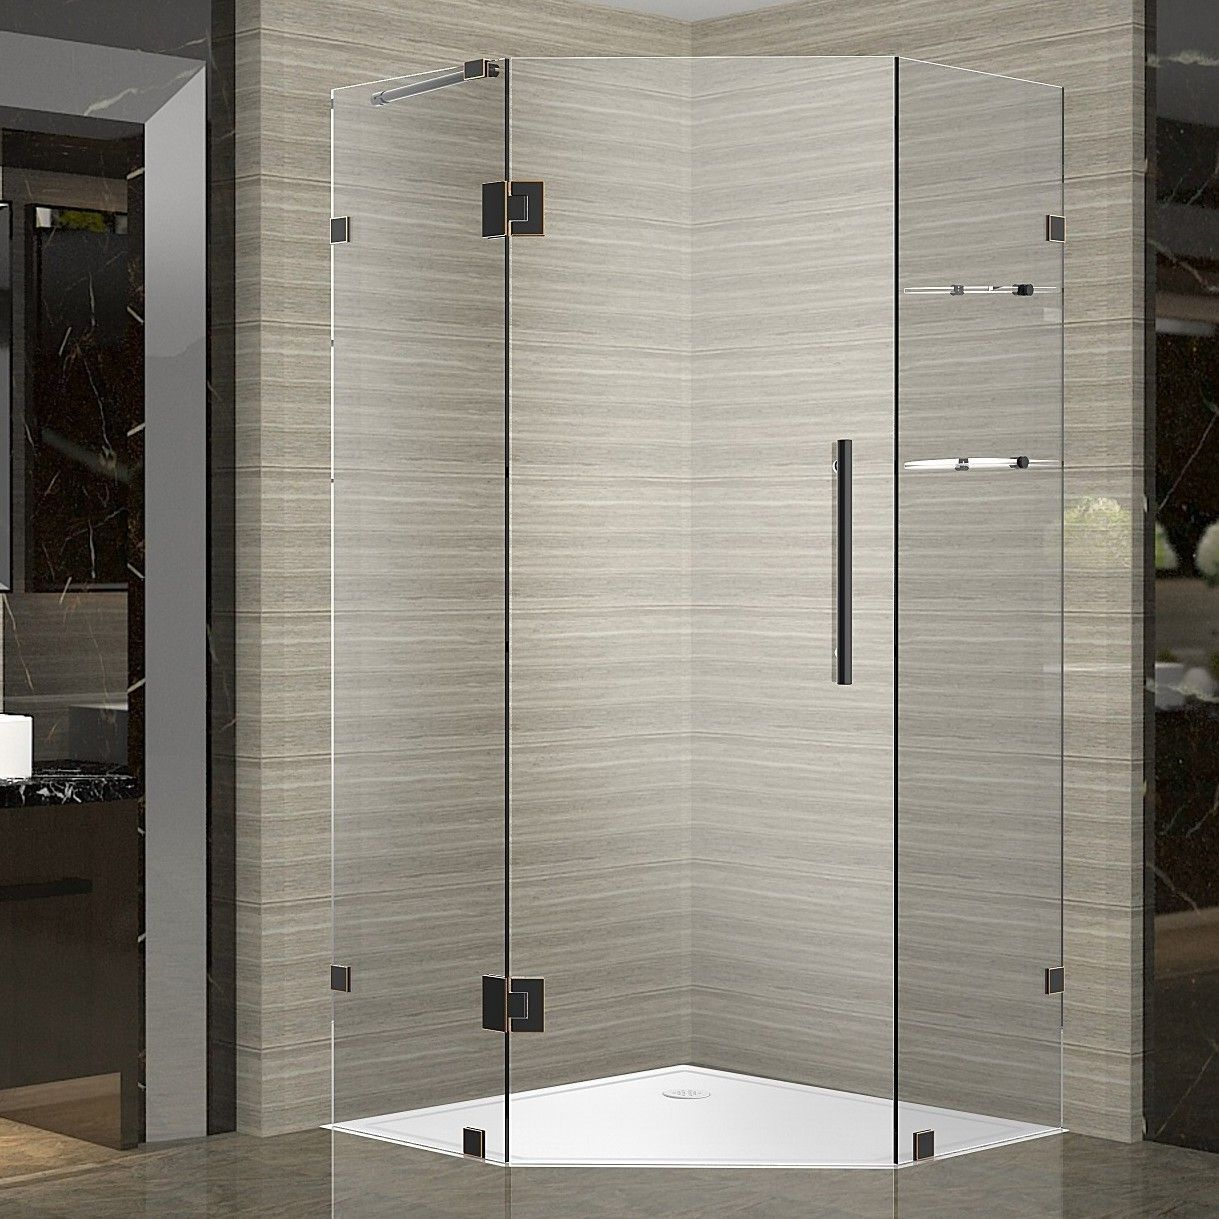 Neoscape Gs 42 X 72 Hinged Frameless Shower Door Products